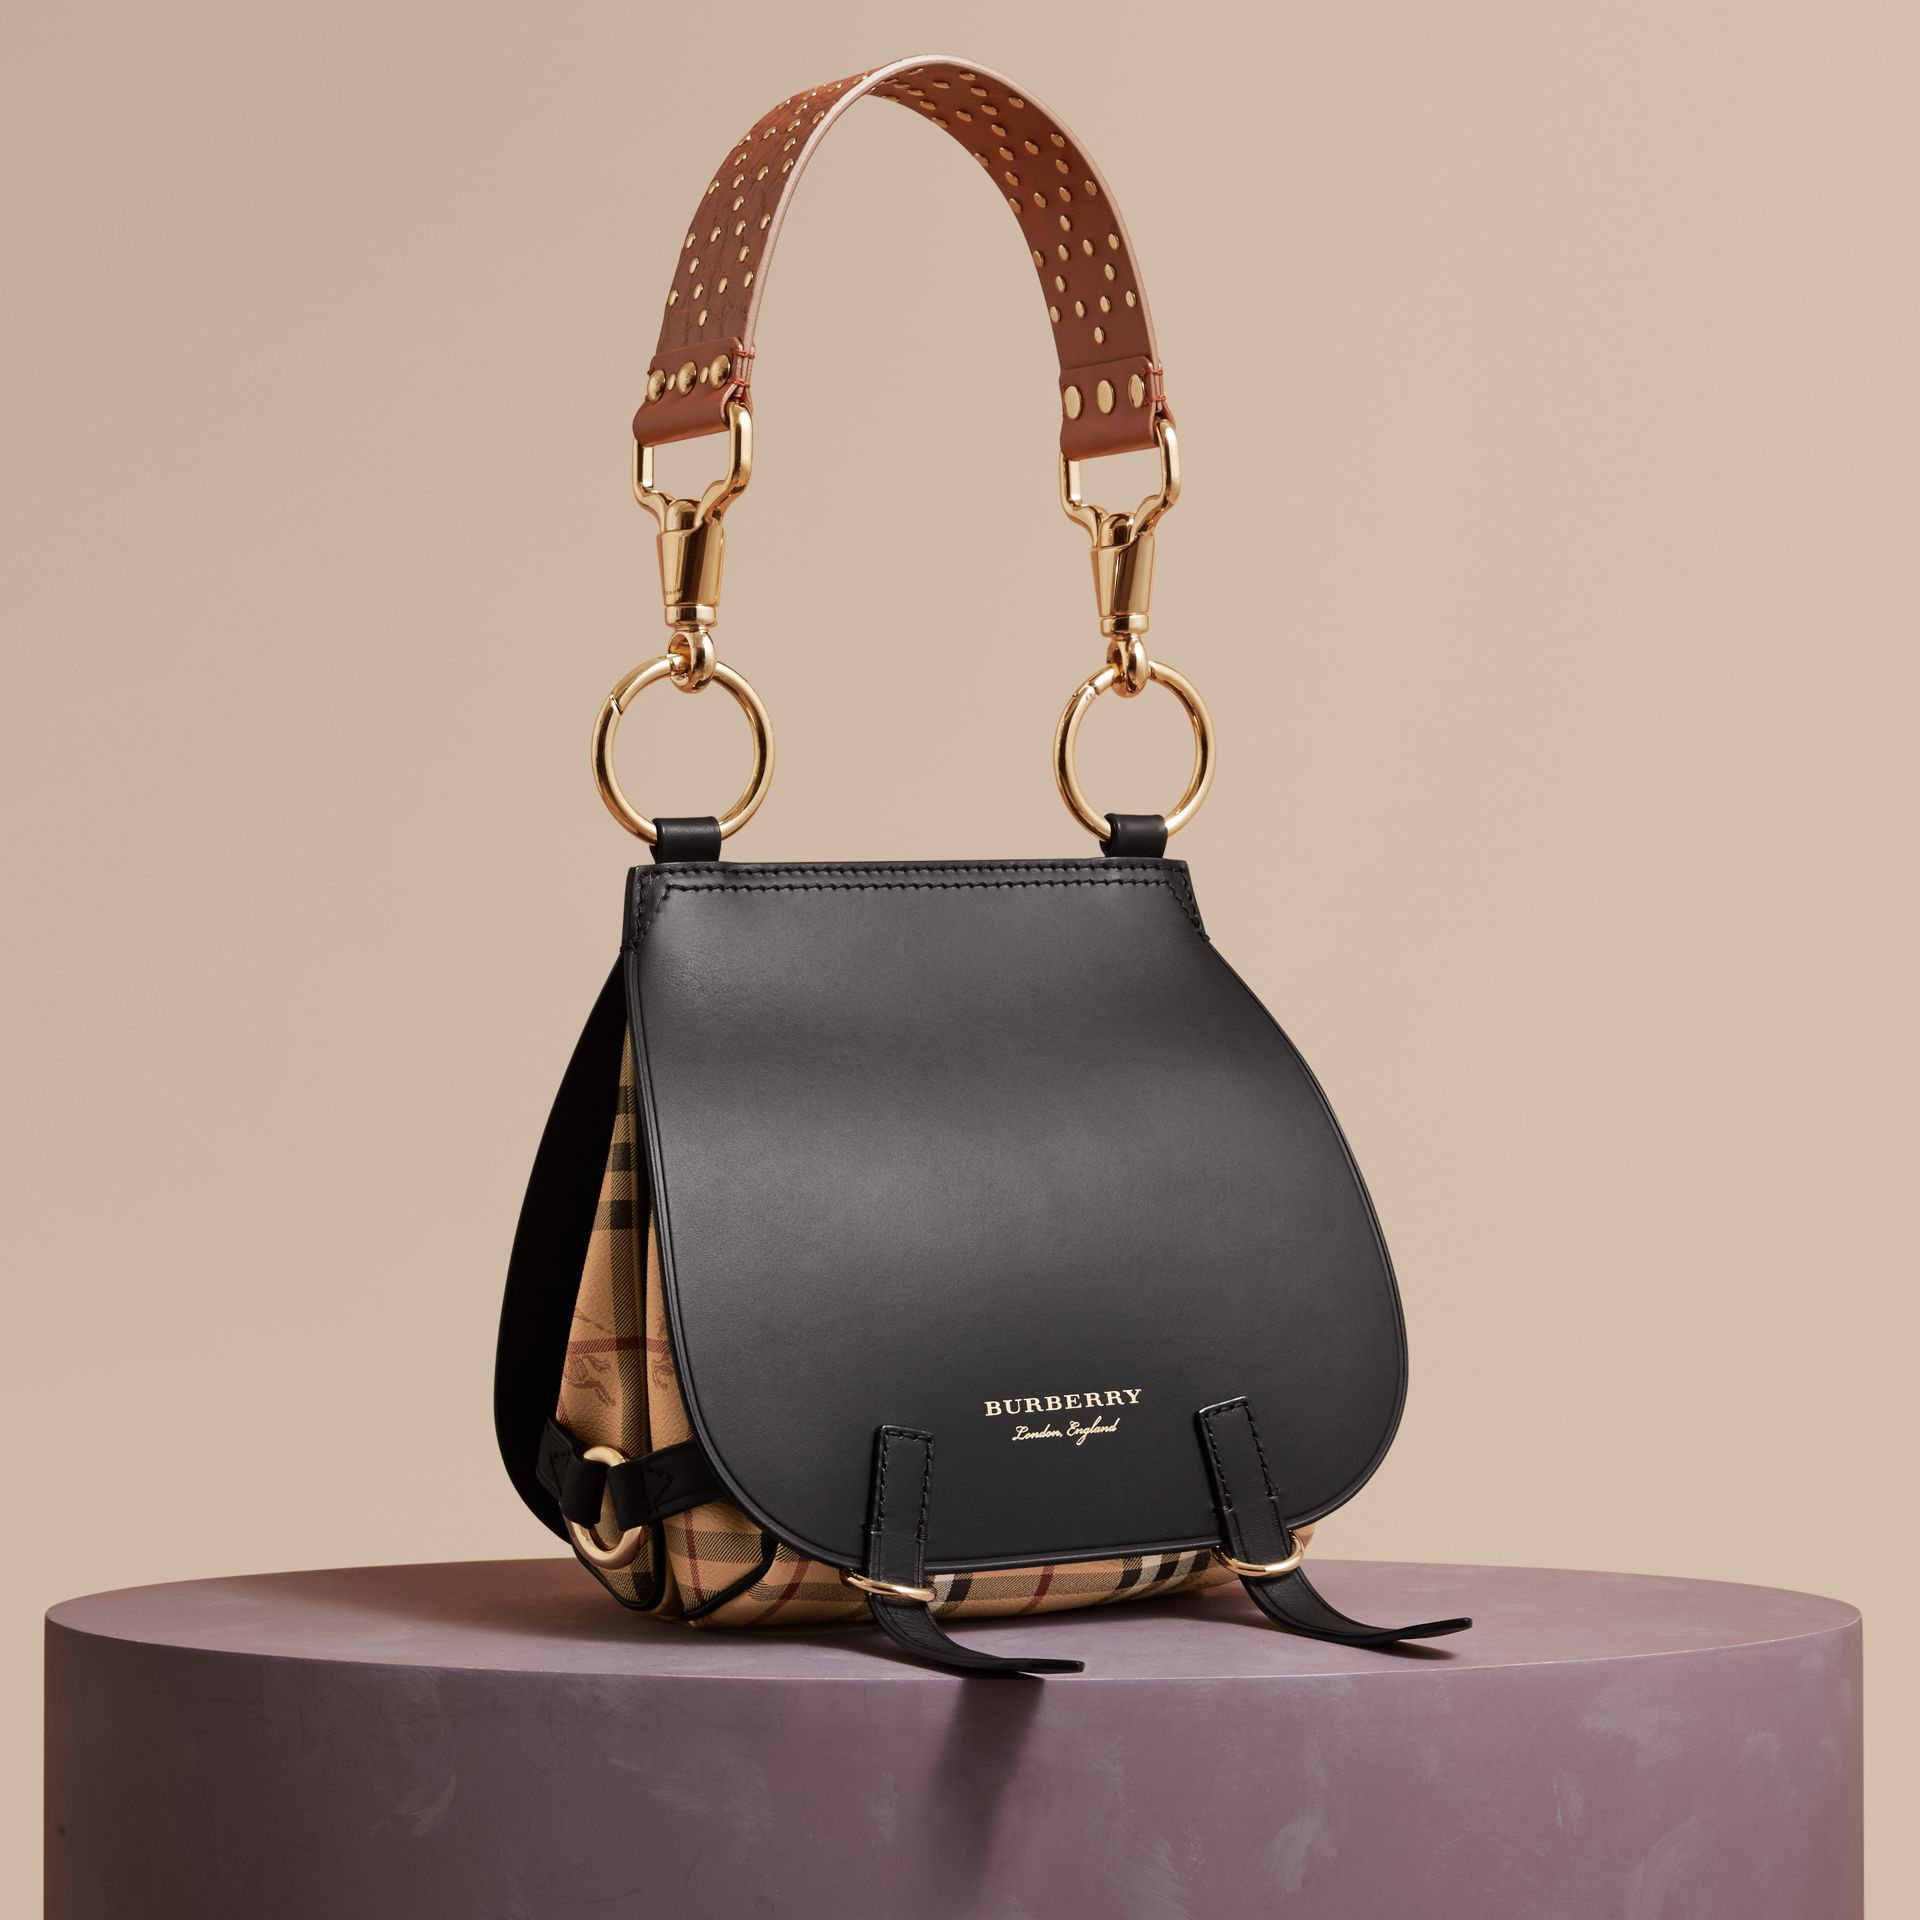 Nero Borsa The Bridle in pelle, motivo Haymarket check e alligatore - immagine della galleria 1